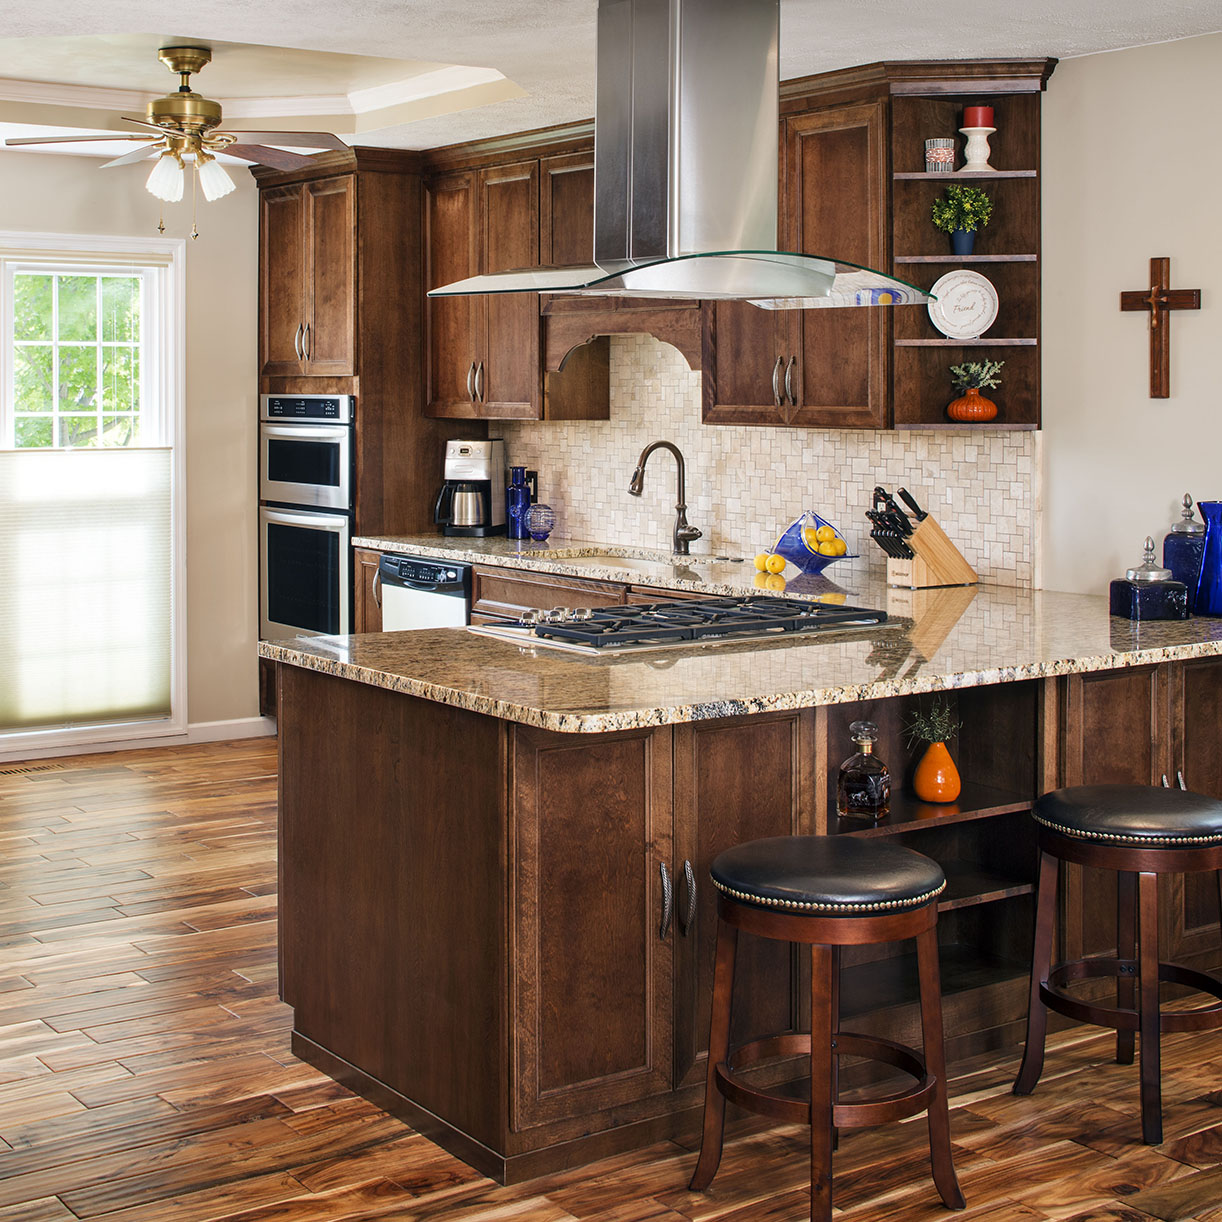 Cabinet Factory Outlet – Engelkamp Kitchen – Marquis Cabinets